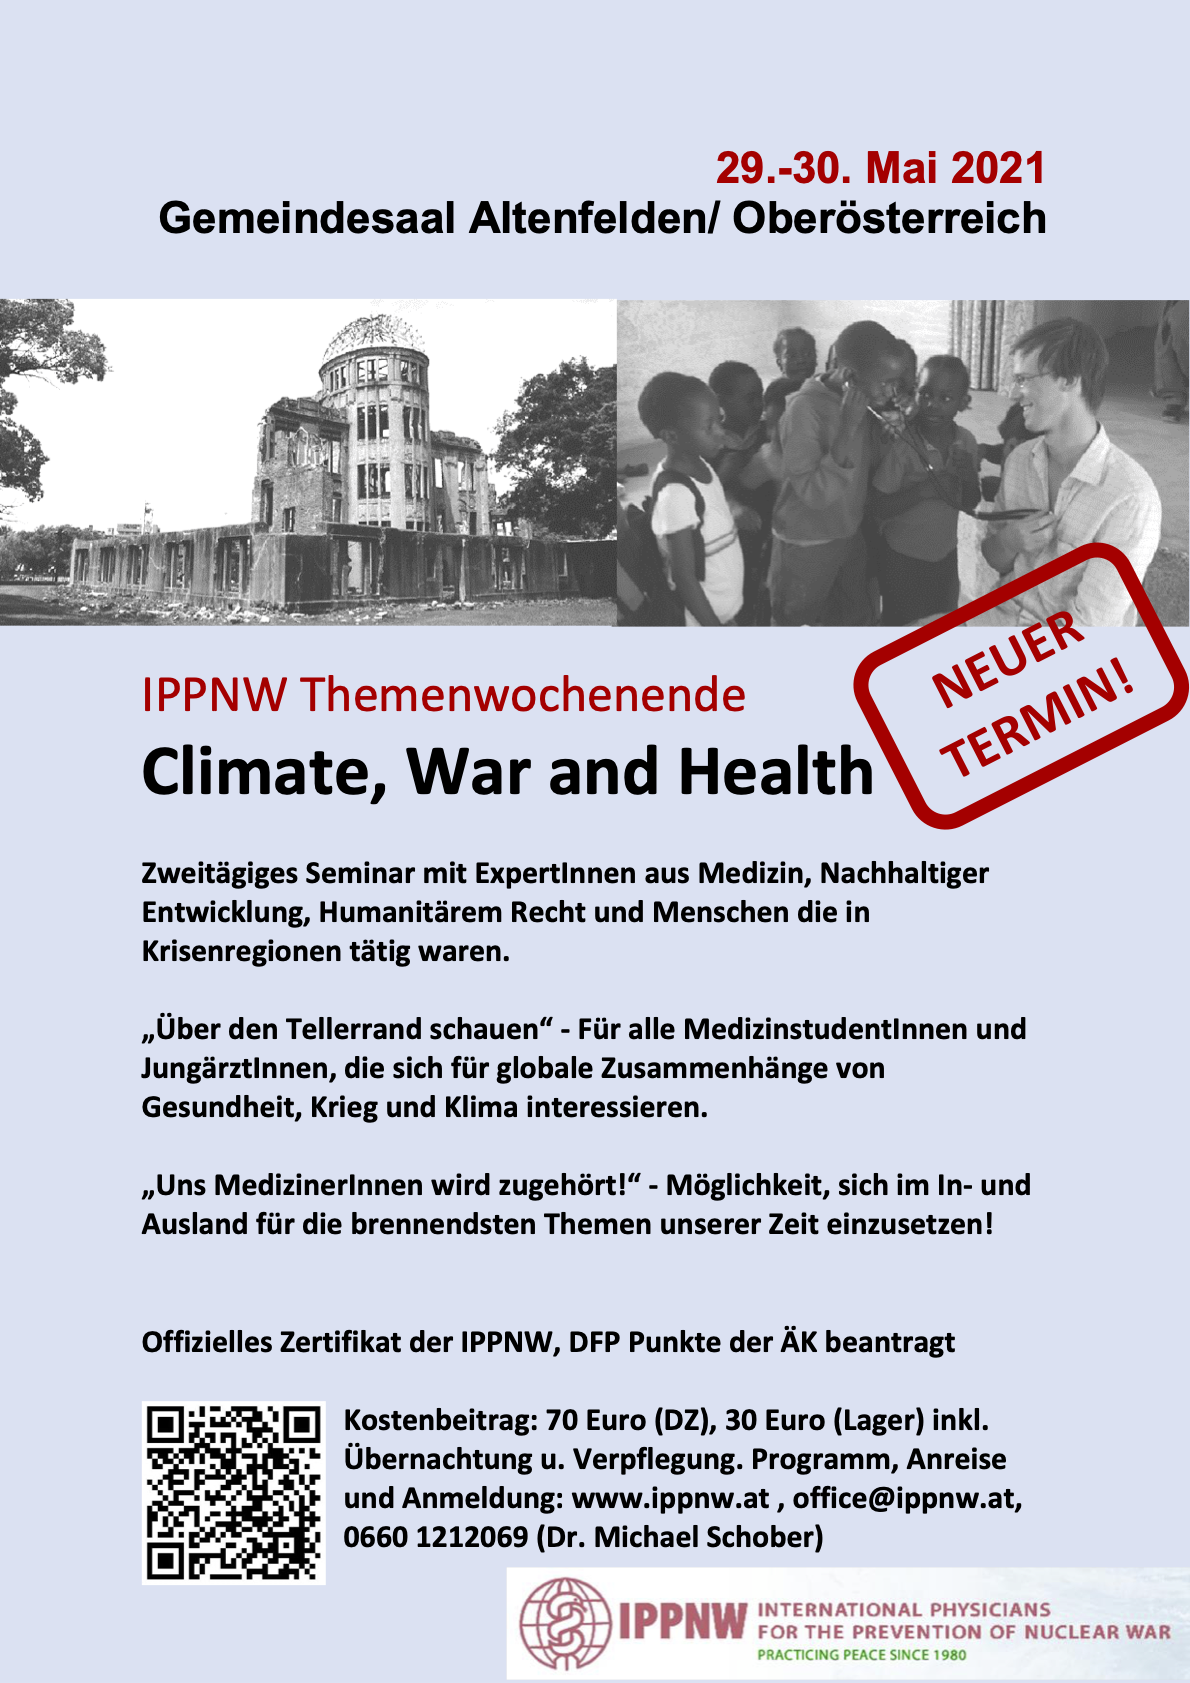 IPPNW Themenwochenende November 2020